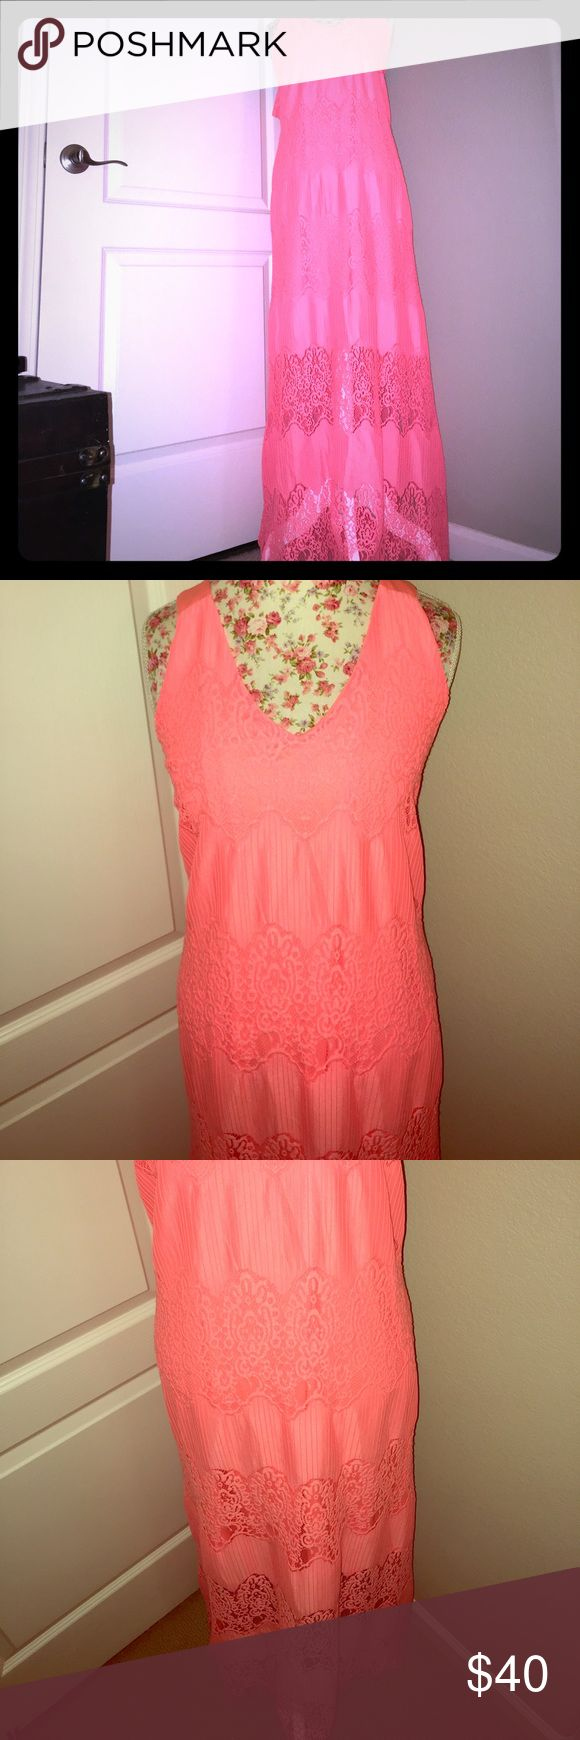 Coral Lace Maxi Dress This coral and lace maxi dress is new without tags. It is truly a beautiful summer frock that can be worn with wedges or sandals. Lane Bryant Dresses